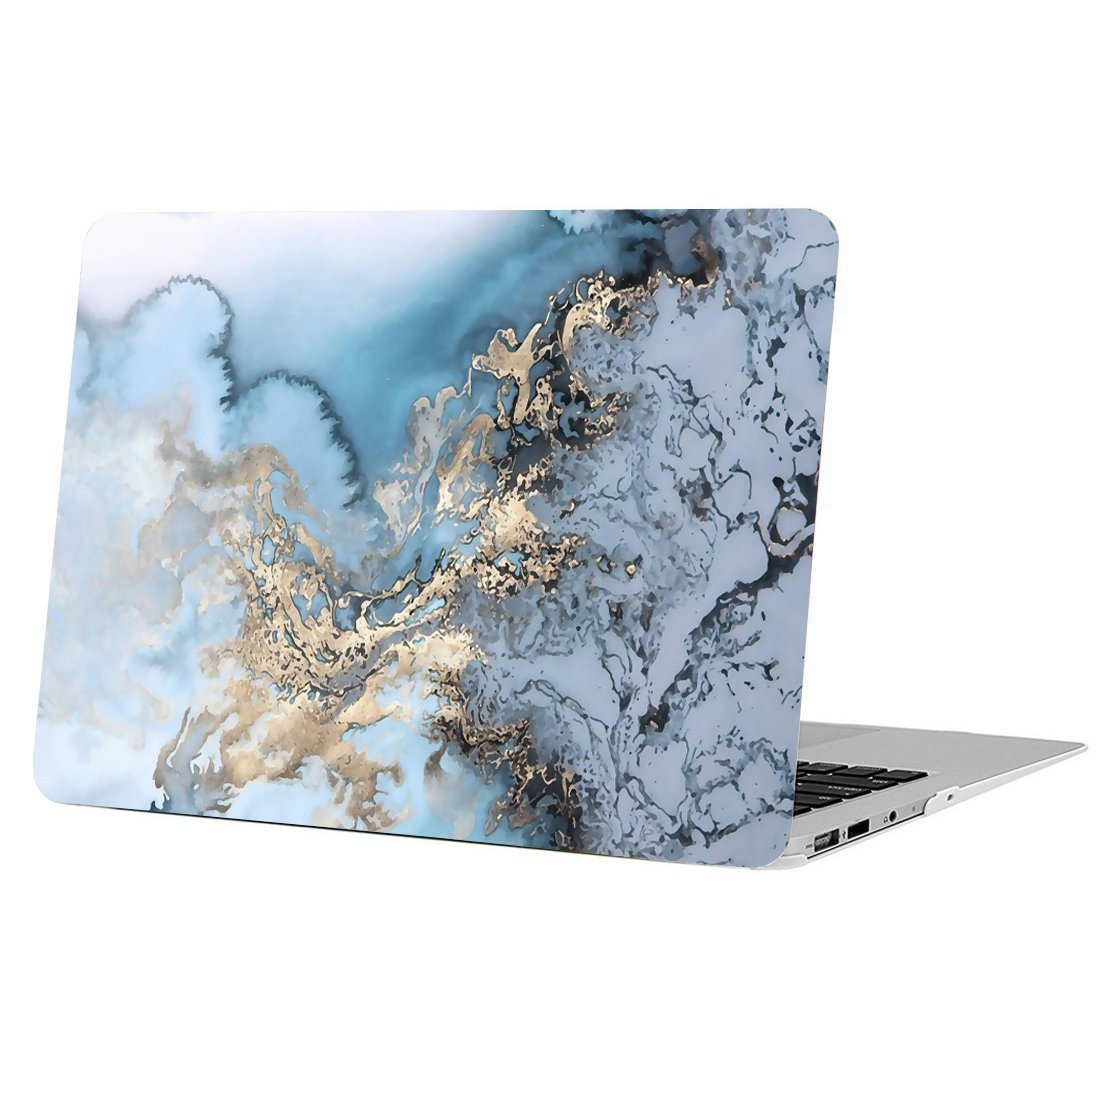 MacBook Pro 13'' 2016/2017/2018 Release, Funut Rubber Coated Glossy Plastic Hard Case Shell Fashion Style for MacBook Pro 13'' 2016/2017/2018 Release (A1706/A1708/A1989) - Watercolour of Marble